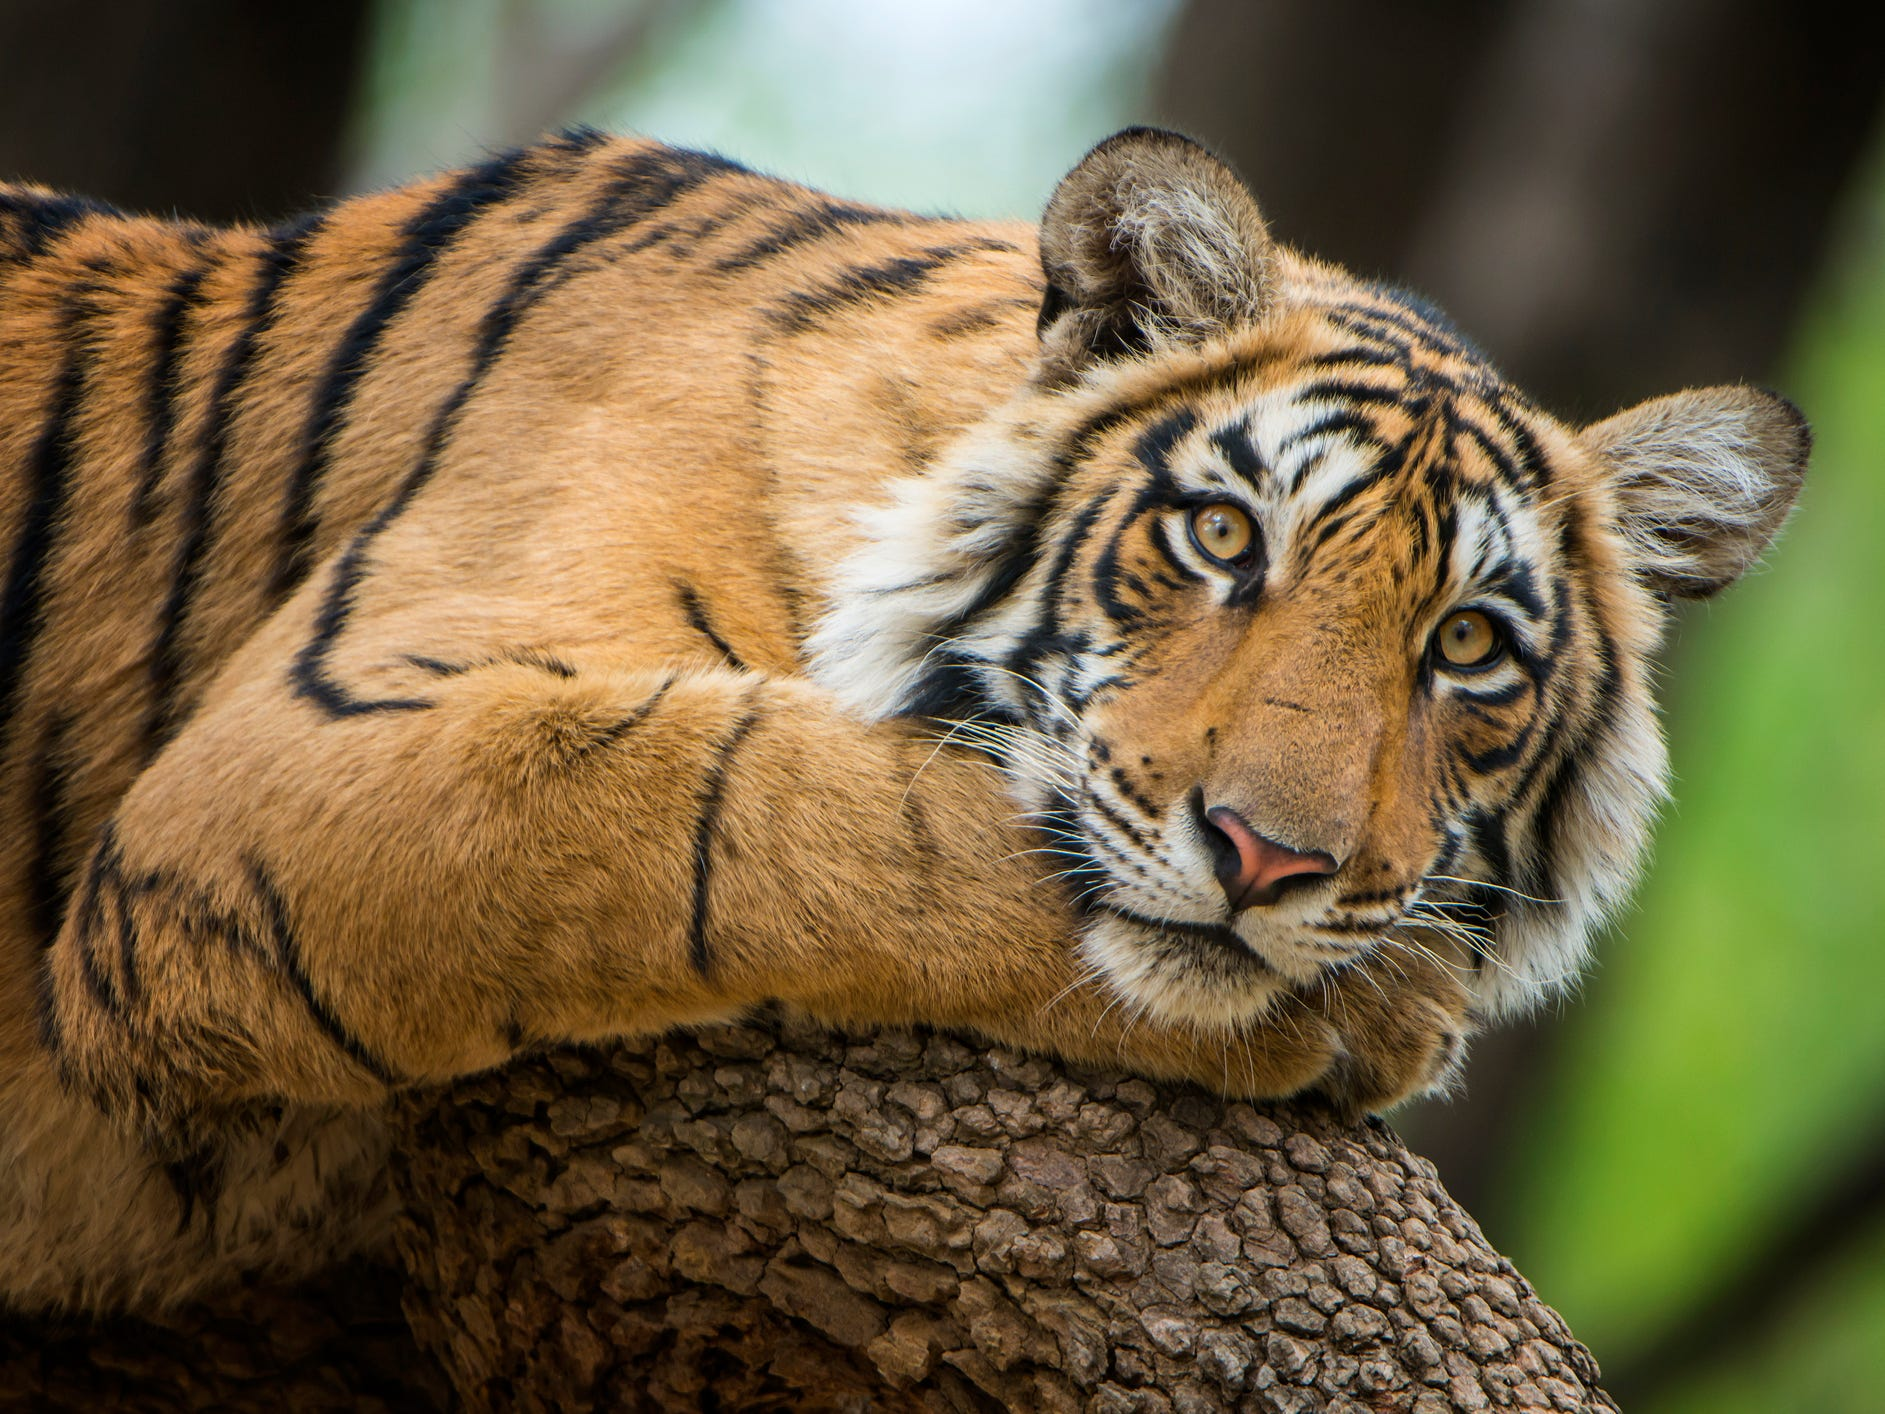 India: There are few sights more magnificent than a 400-pound Bengal tiger stalking across the grass, muscles rippling under its sleek striped coat. Tigers are most easily spotted in a string of parks across India, including Corbett and Bandhavgarh national parks. The most appealing, though, may be Ranthambore National Park; once the hunting grounds of Jaipur's maharajas, the park features not only plenty of tigers but also temple ruins and other wildlife such as leopards and sloth bears.